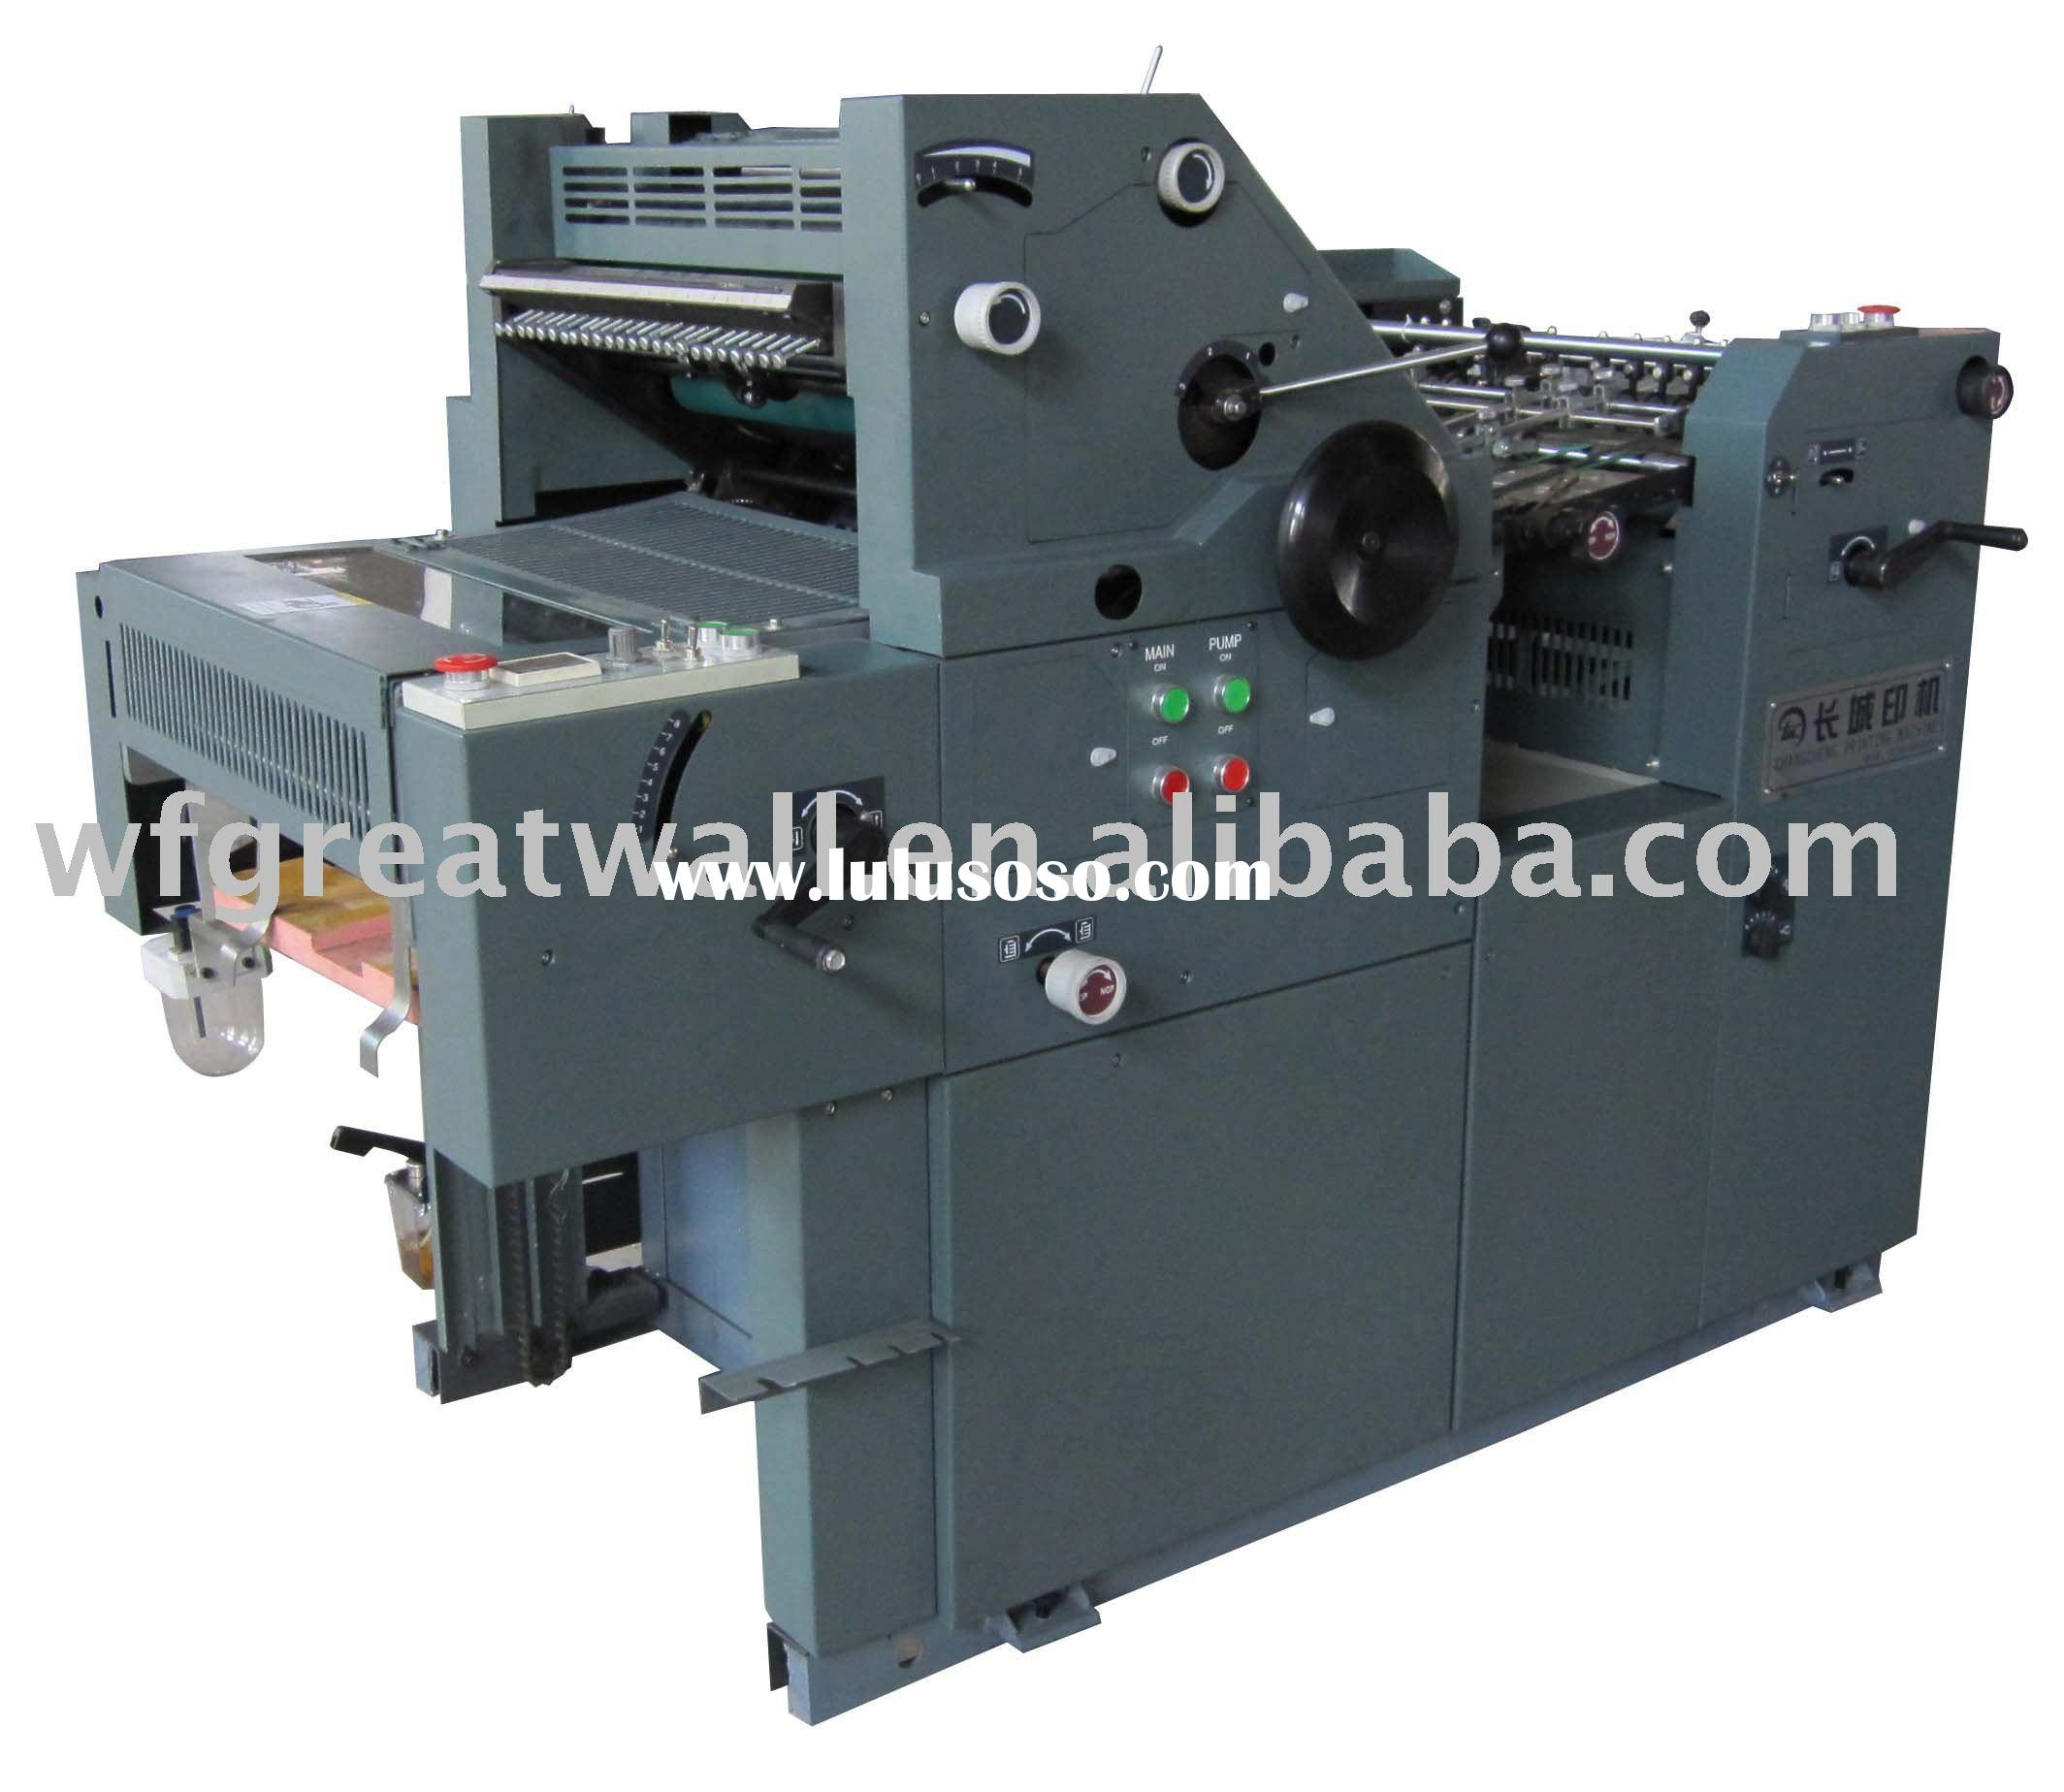 CY47A single color offset printing machine